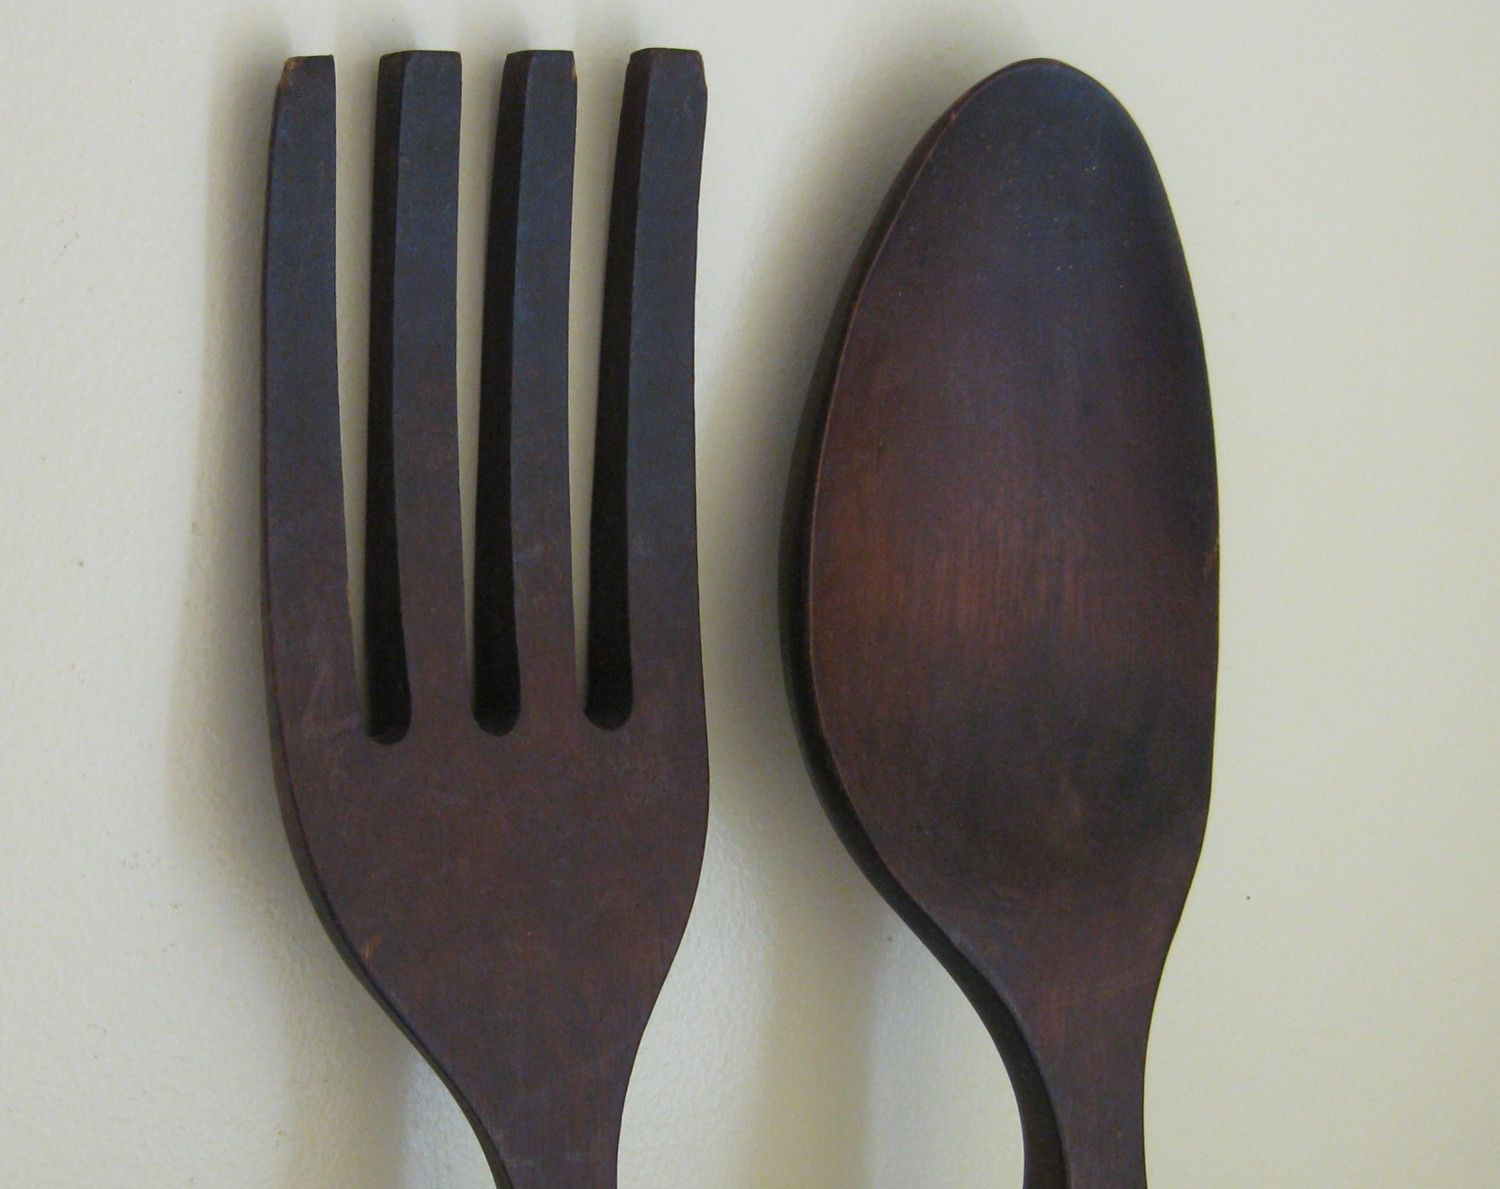 Large Wooden Fork And Spoon Wall Decor 28 Inches Long Wooden Fork Wooden Utensils Large Decor